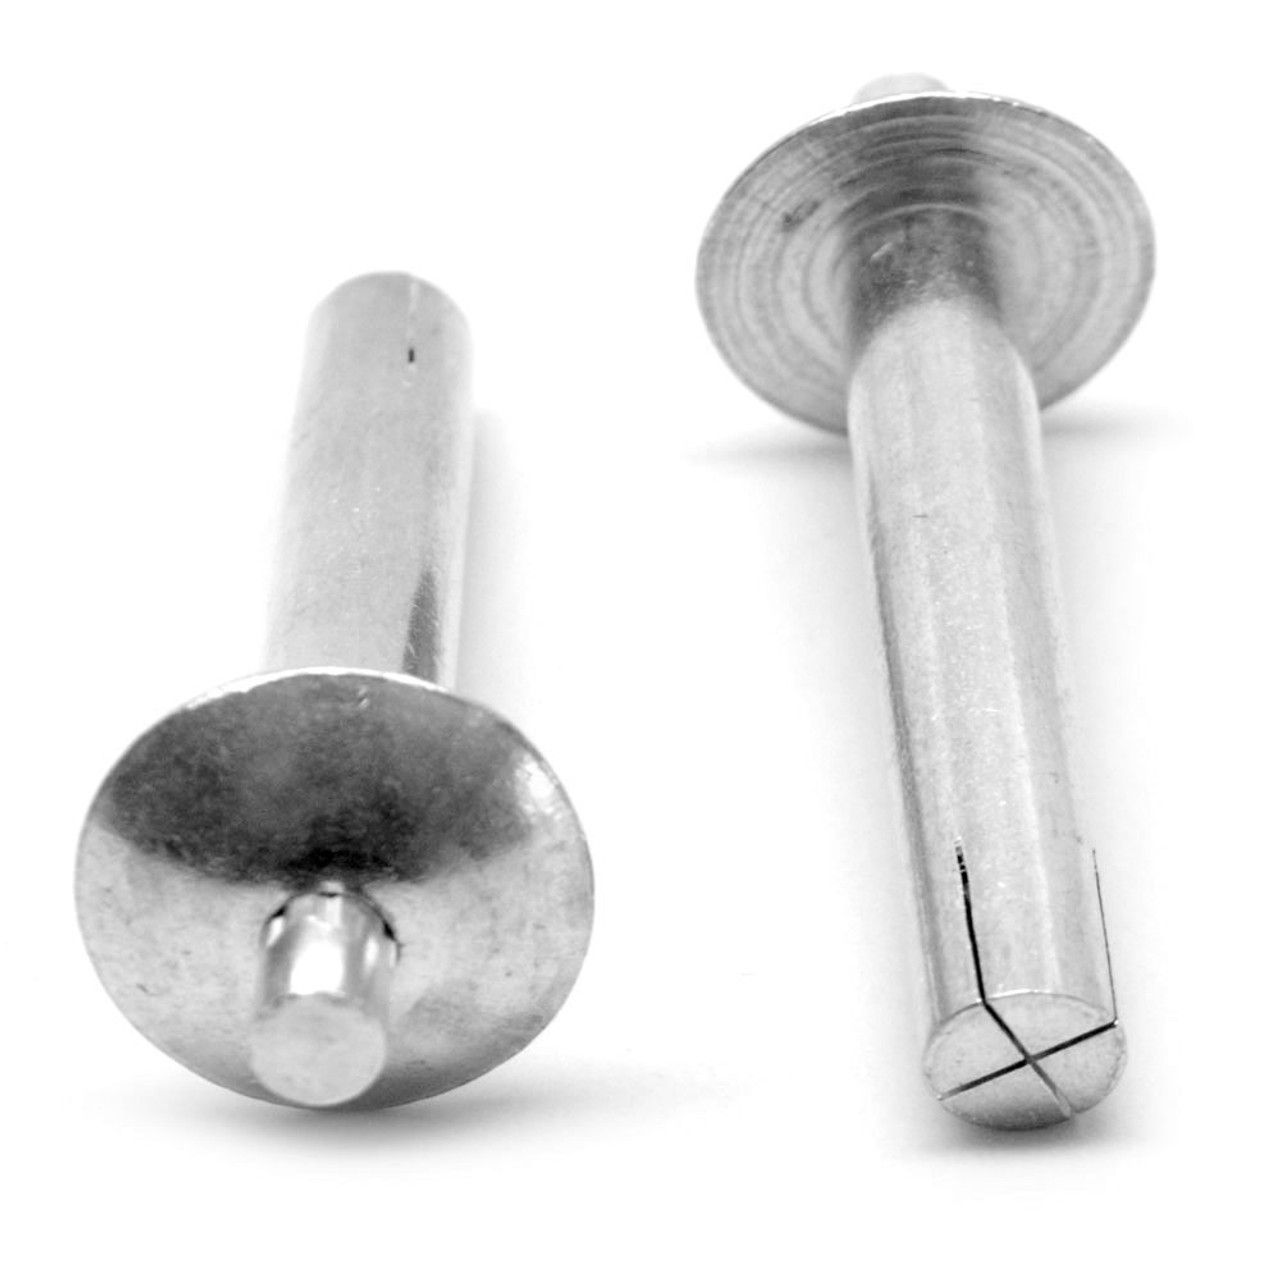 1/4 x 1 7/16 Drive Pin Rivet Brazier Head with Stainless Pin Aluminum